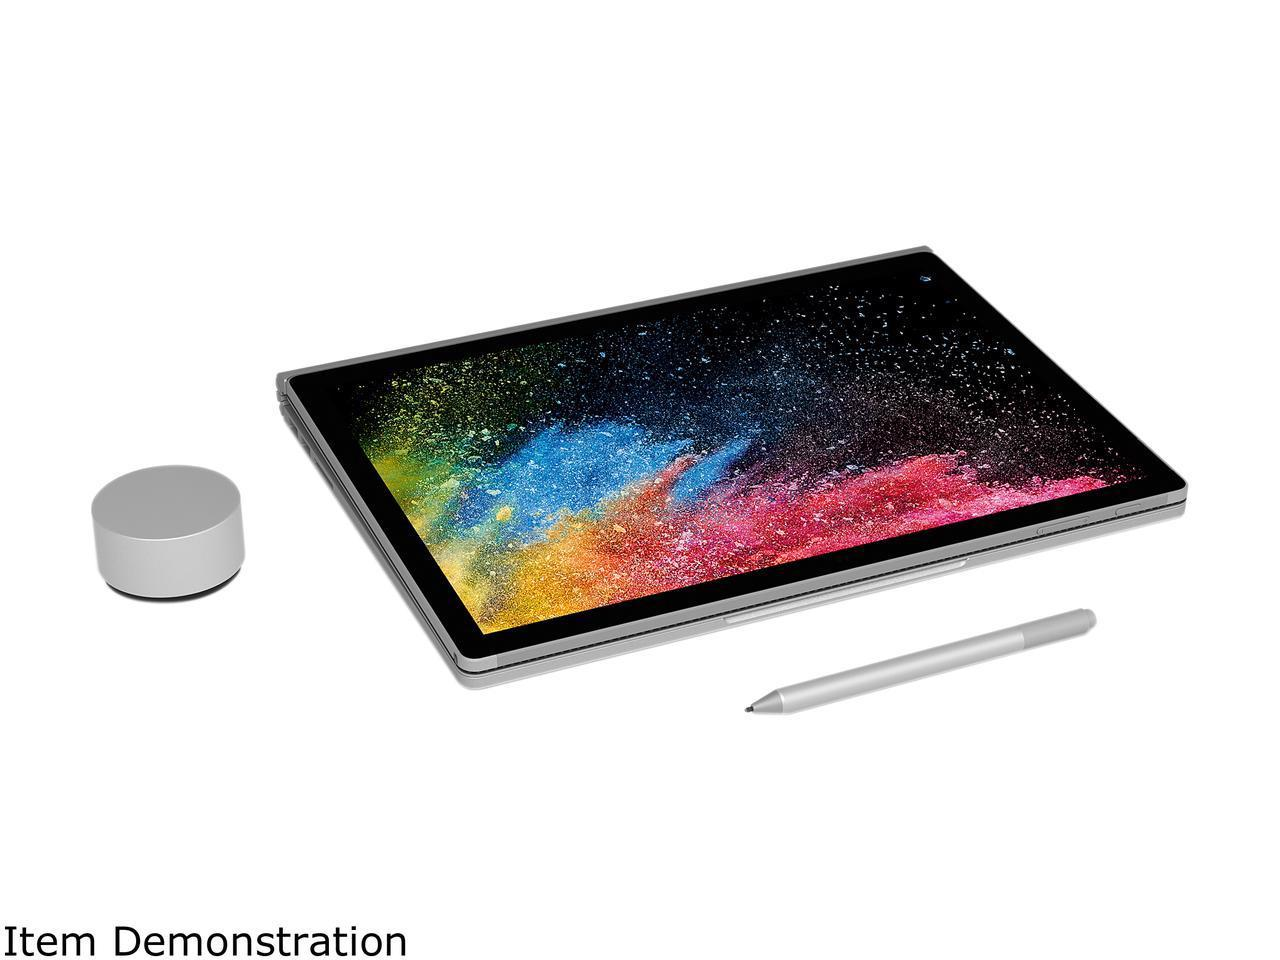 Microsoft Surface Book 2 HMW-00001